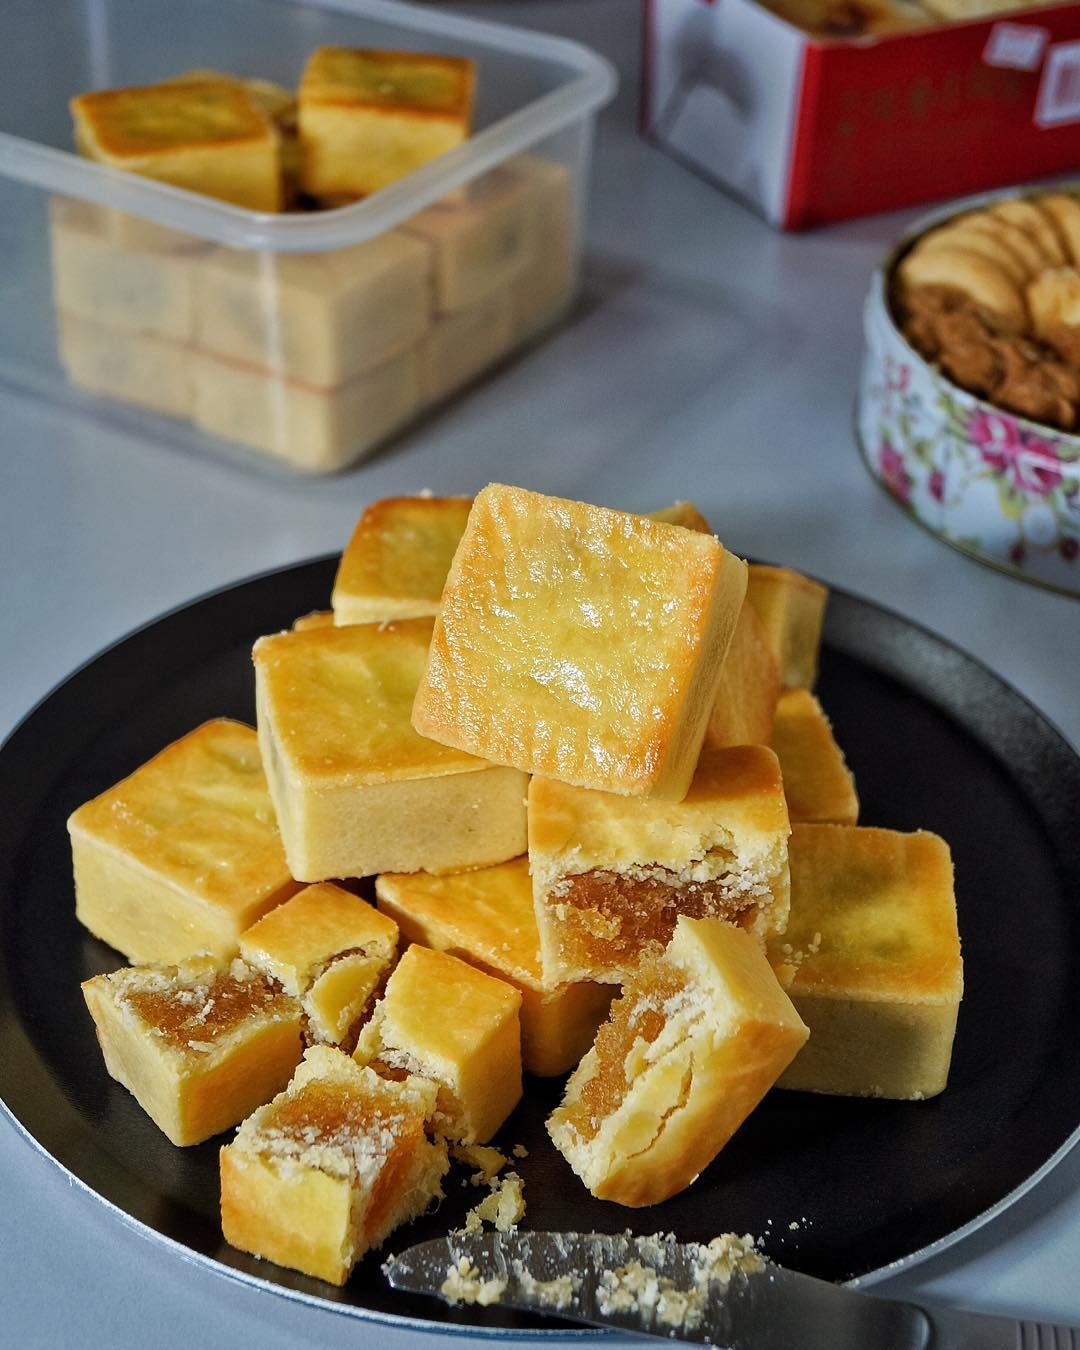 Taiwan pineapple cake (鳳梨酥) - candied winter melon pineapple maltose milk powder pastry. Still one of my favourite pastries I've ever made. The rest are loots that I've gotten from HK and Taiwan  Would be grateful for any recommendations on where I can buy good wife biscuit from HK by jonathanloong